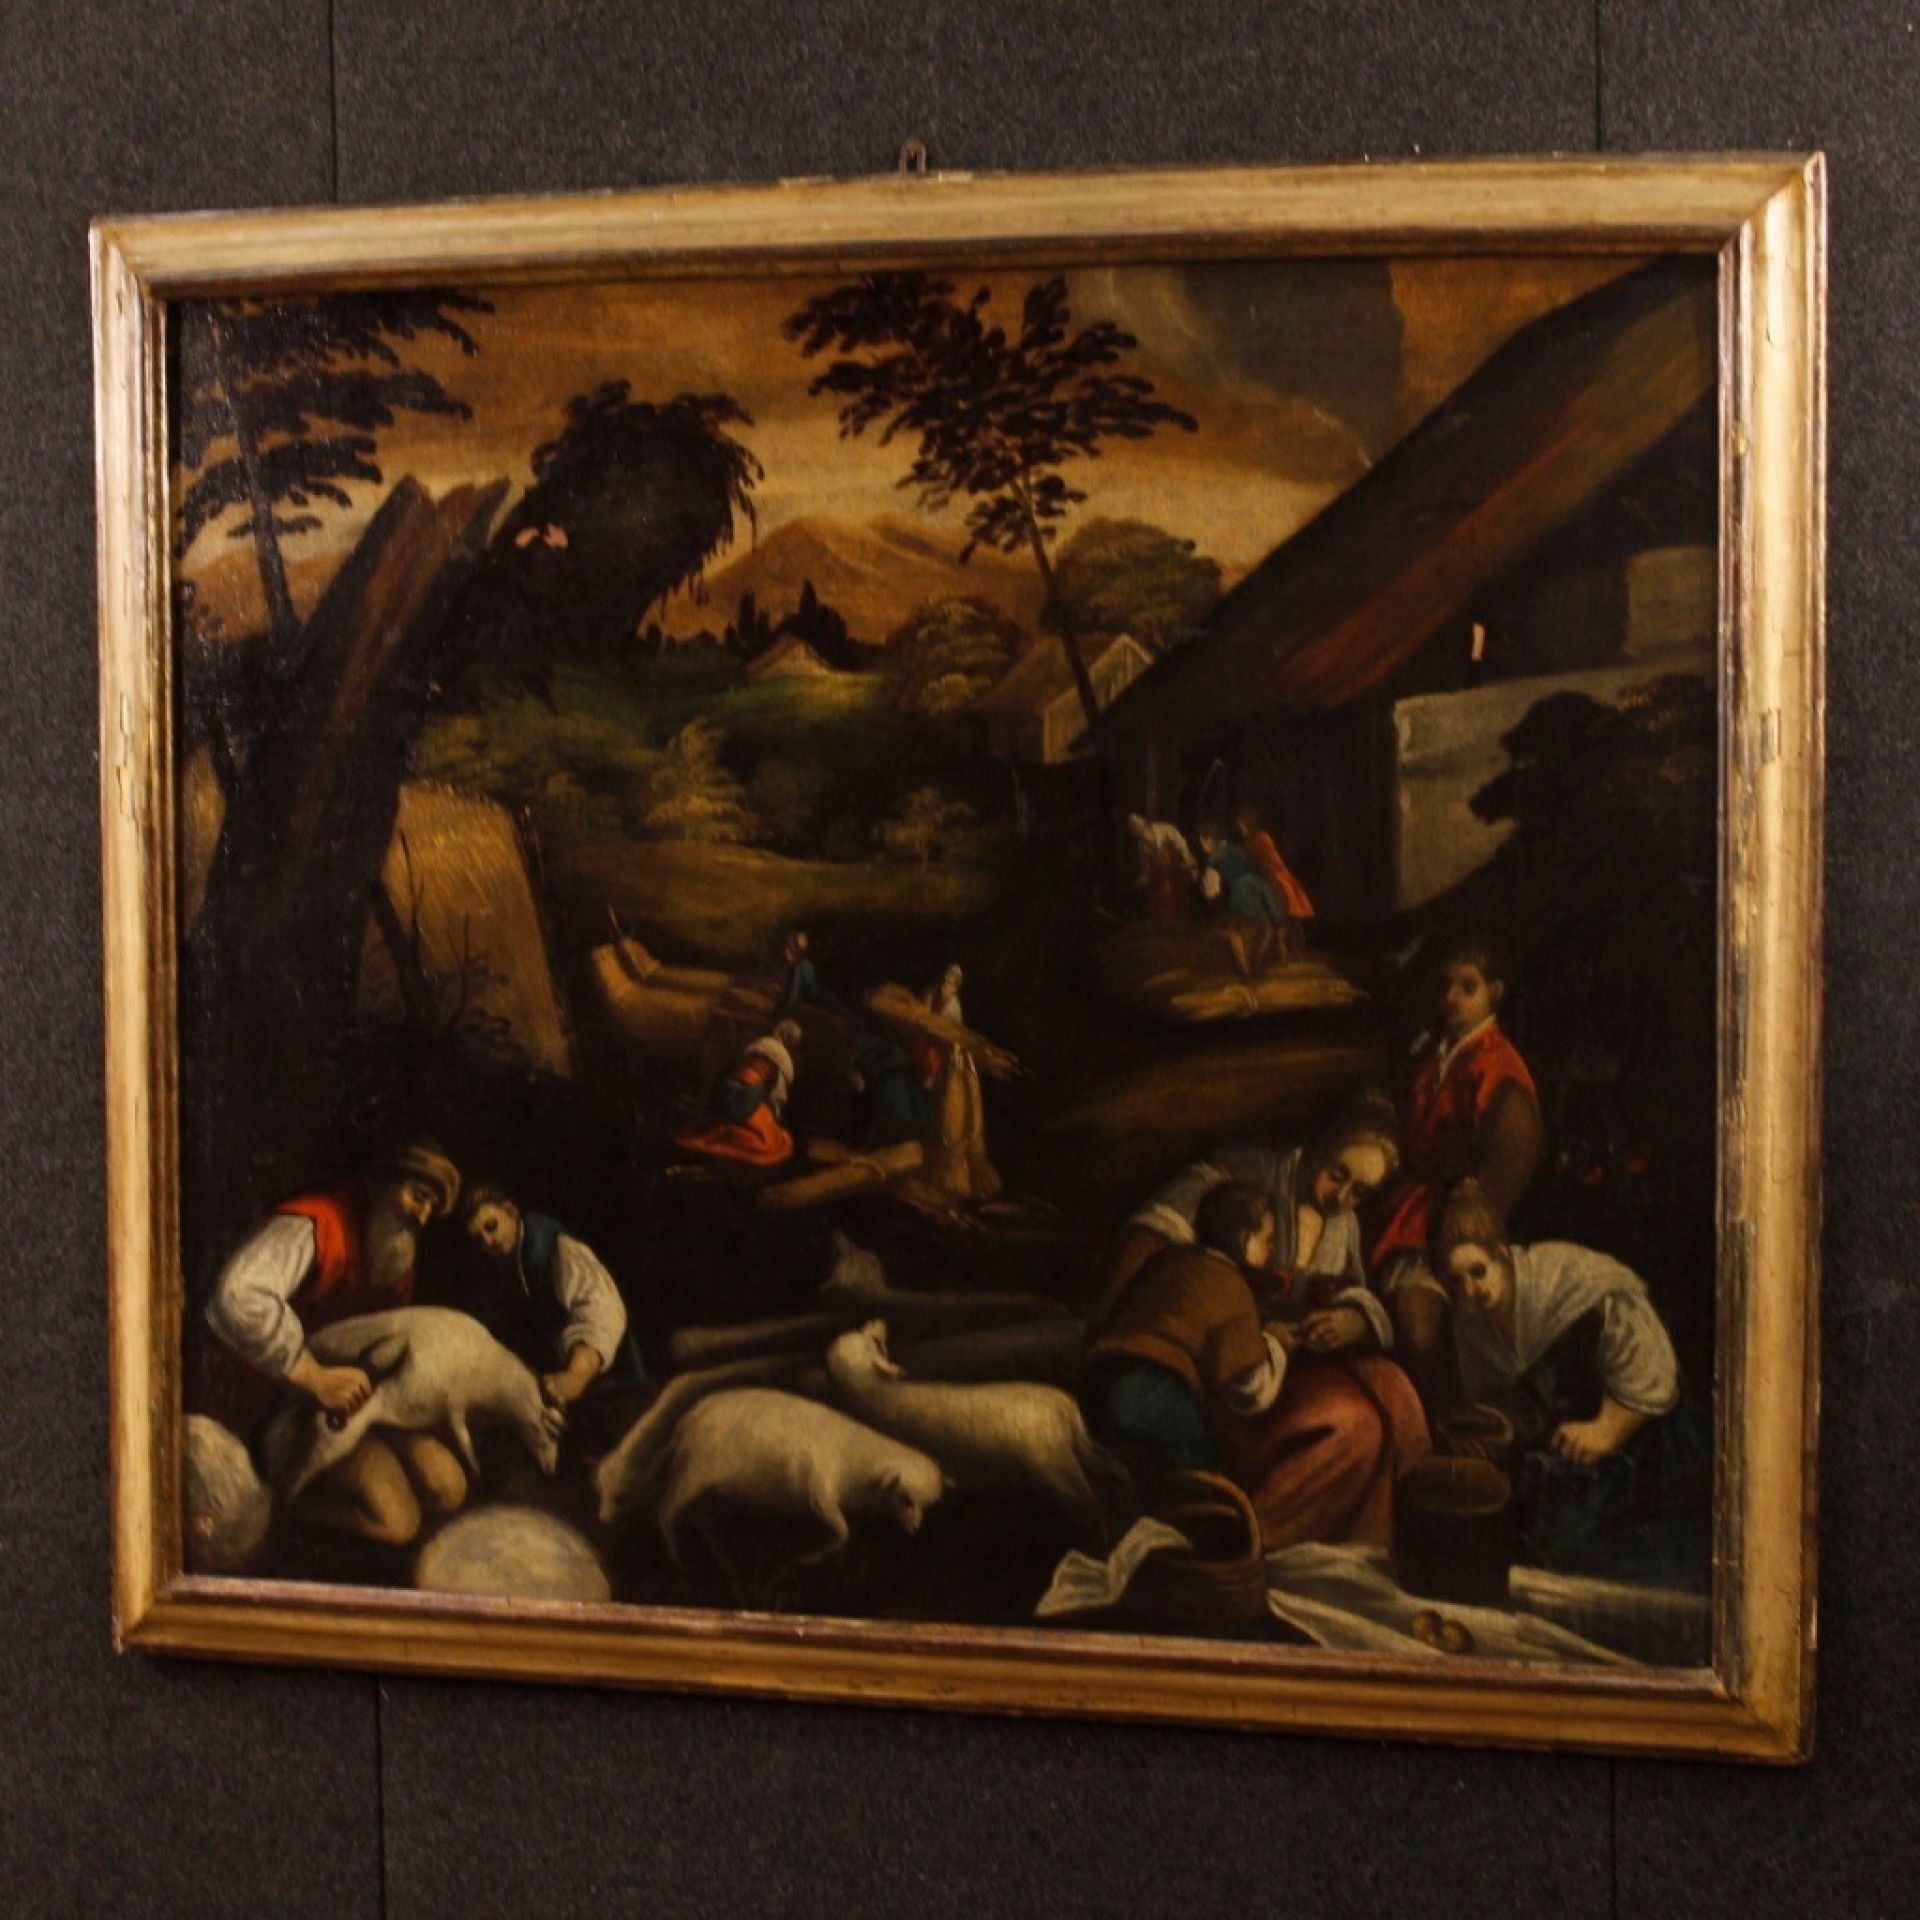 18th Century Antique Italian Oil On Canvas Painting With Landscape And Character